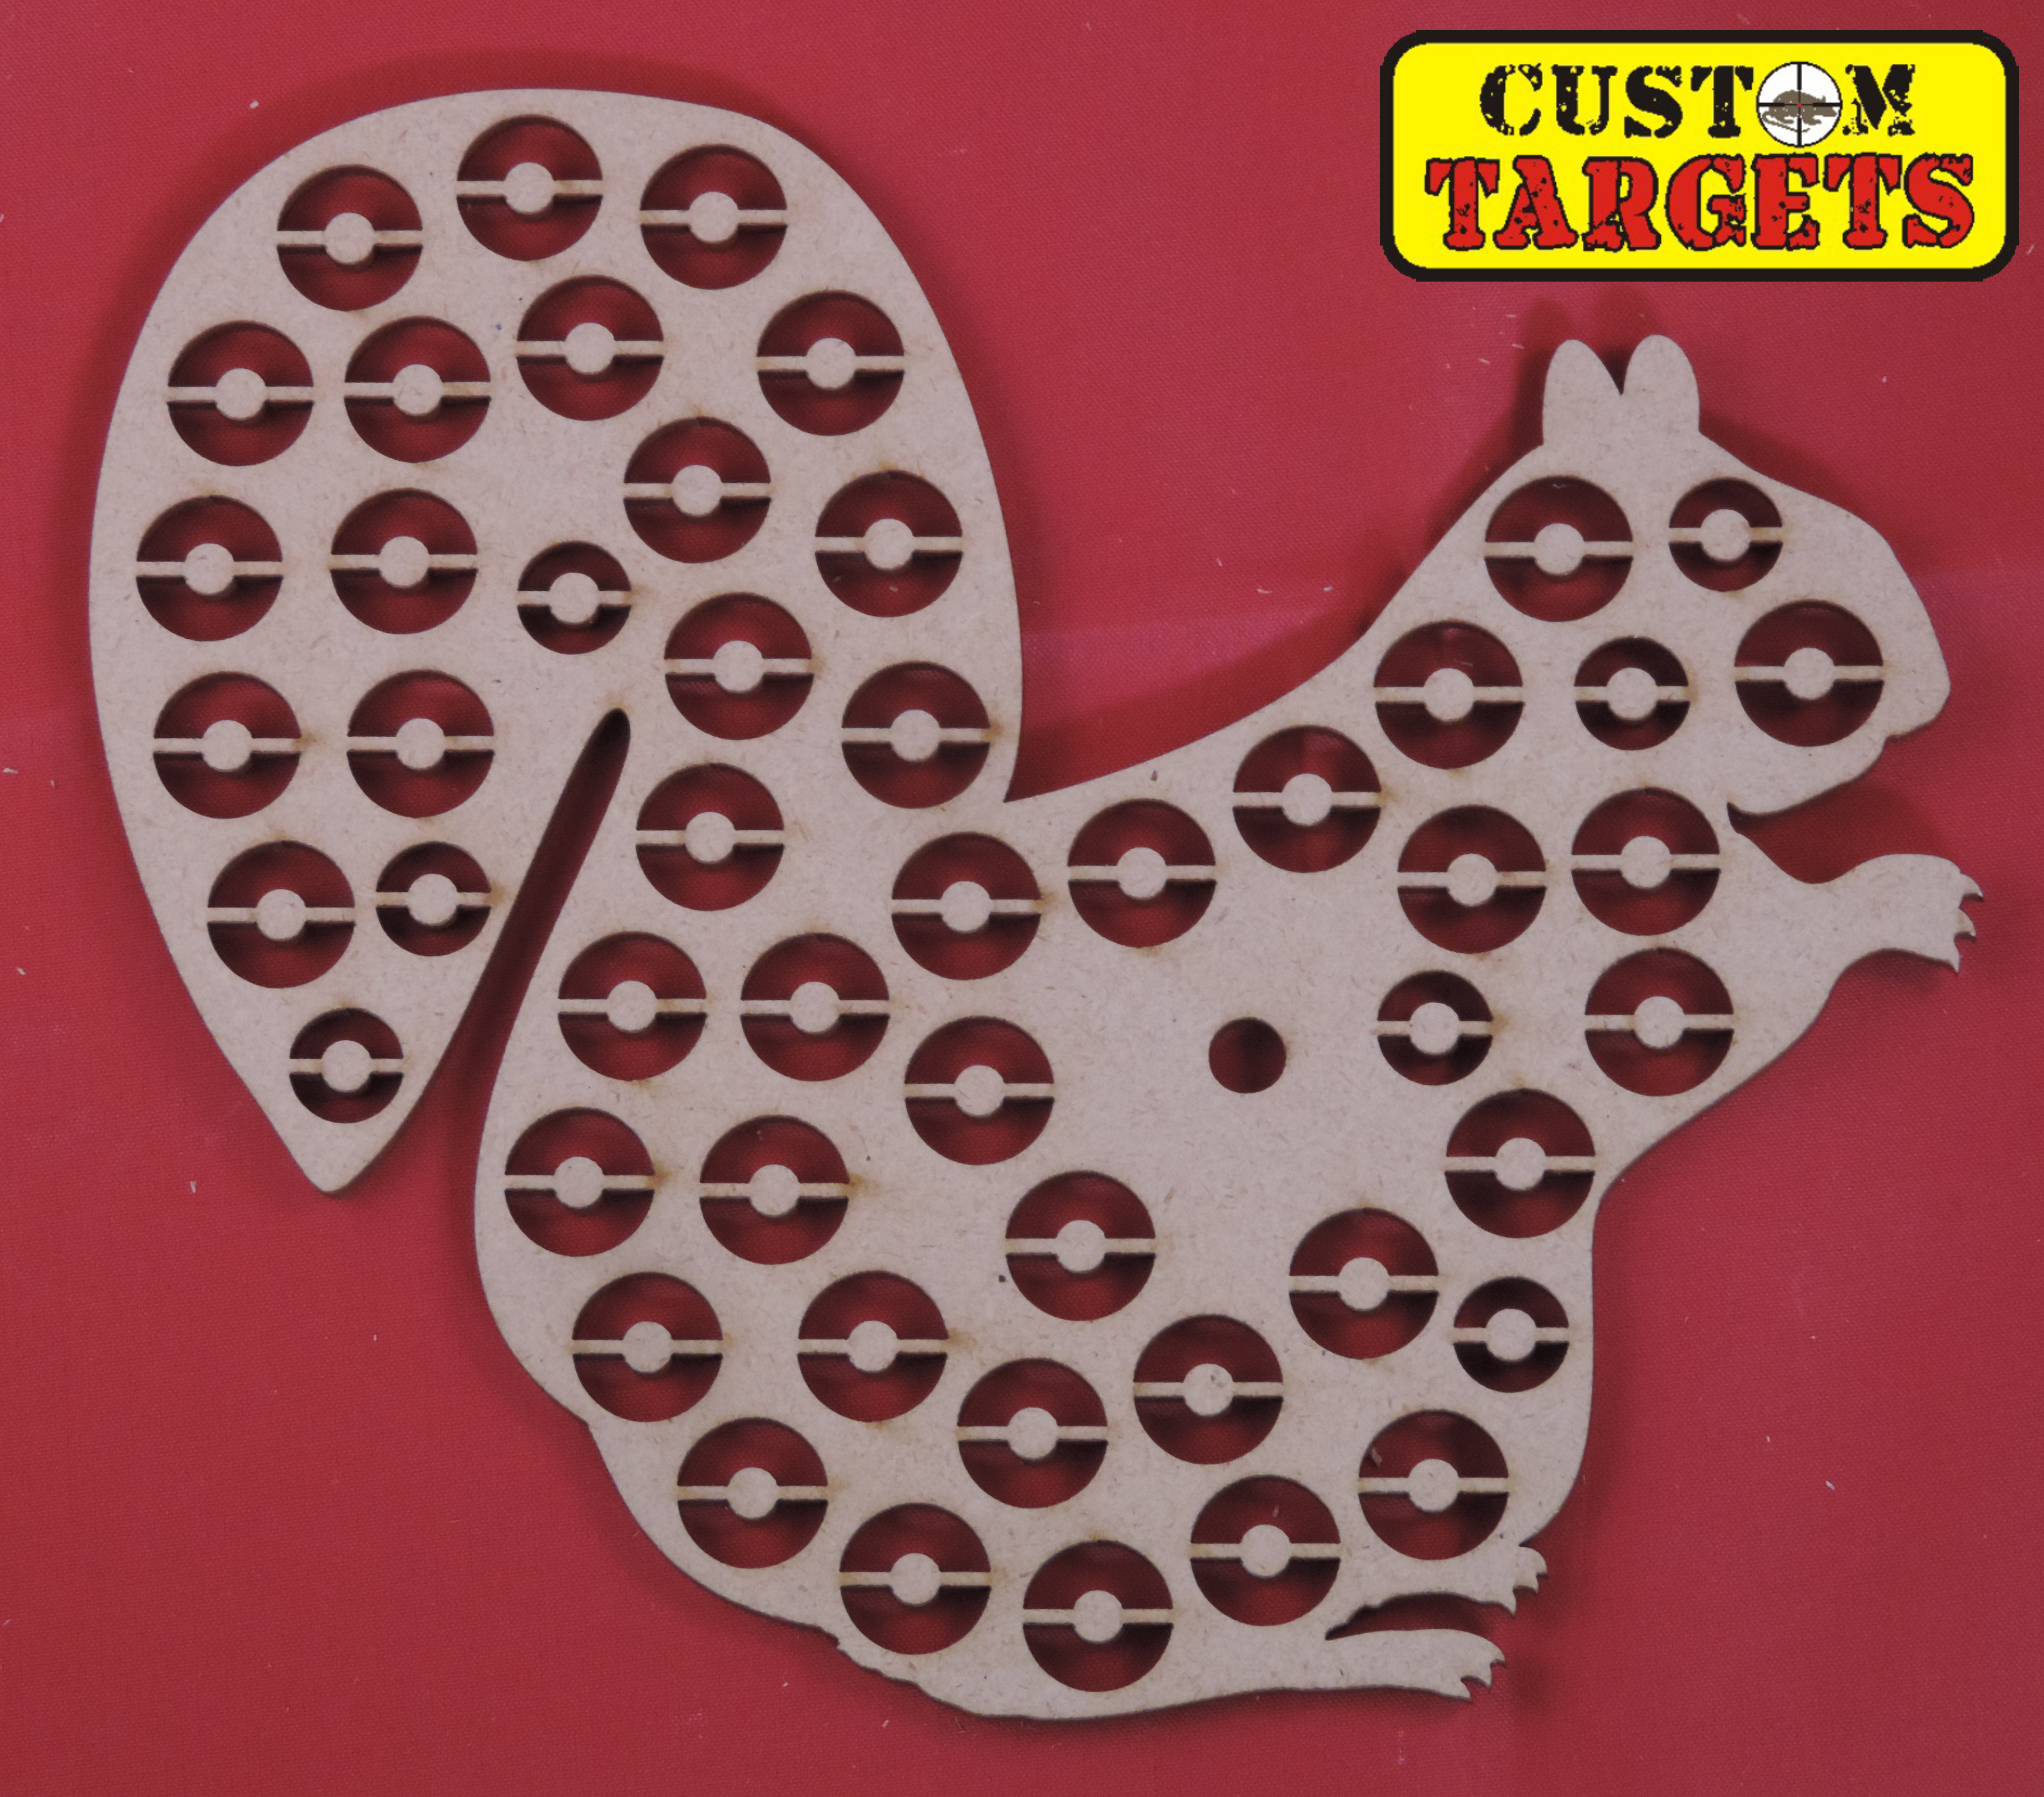 Custom Targets - Squirrel Shoot Out Airgun Target - 50 zones